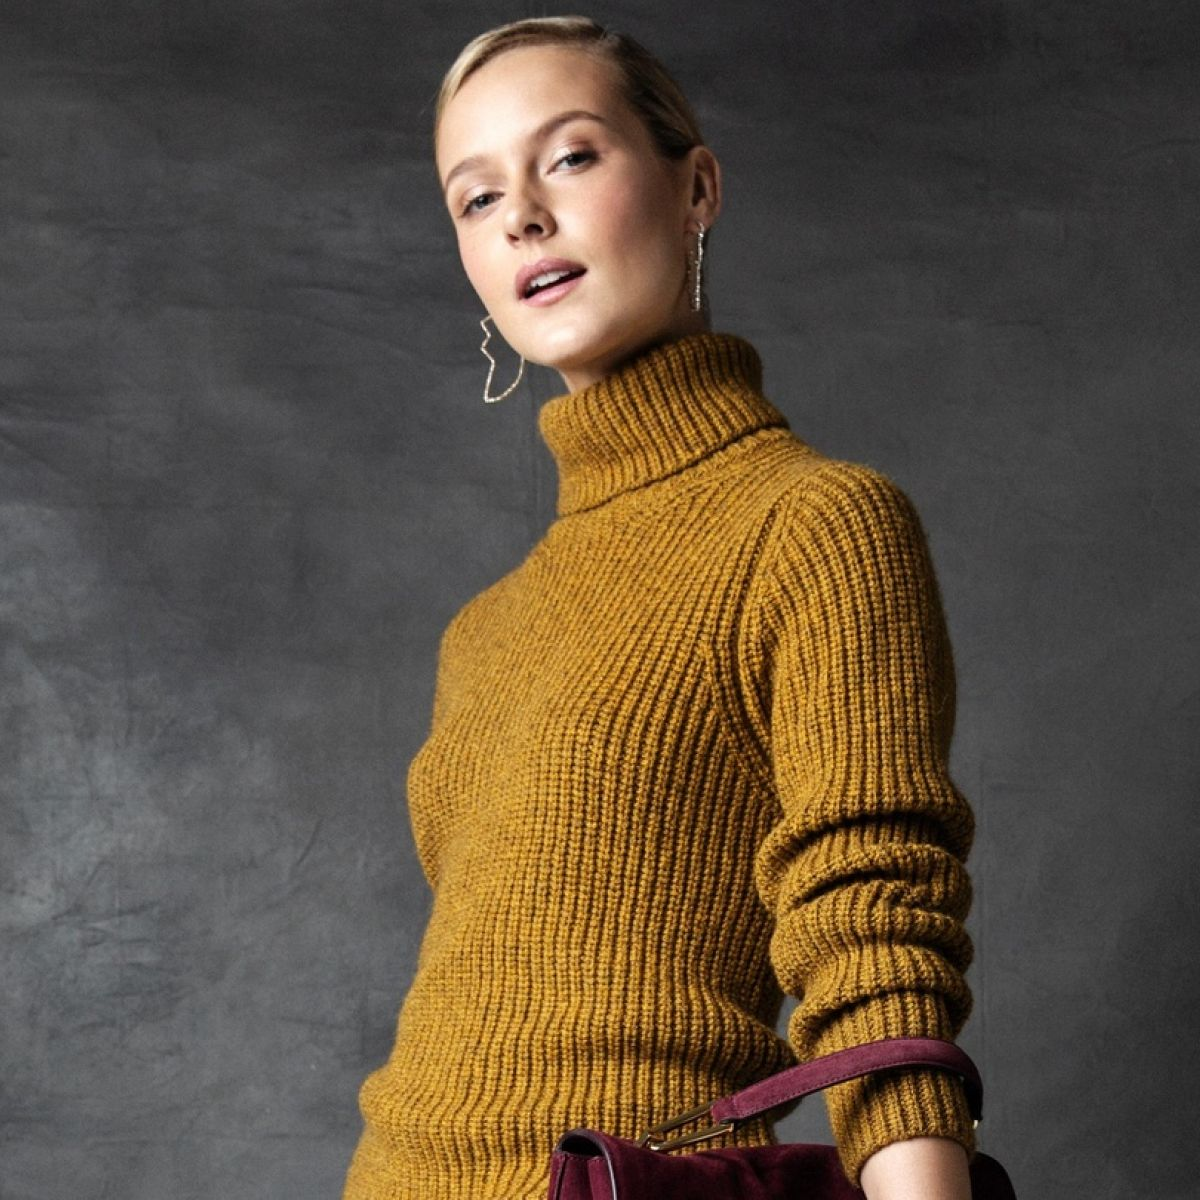 Knitted suit: a universal detail of a female wardrobe